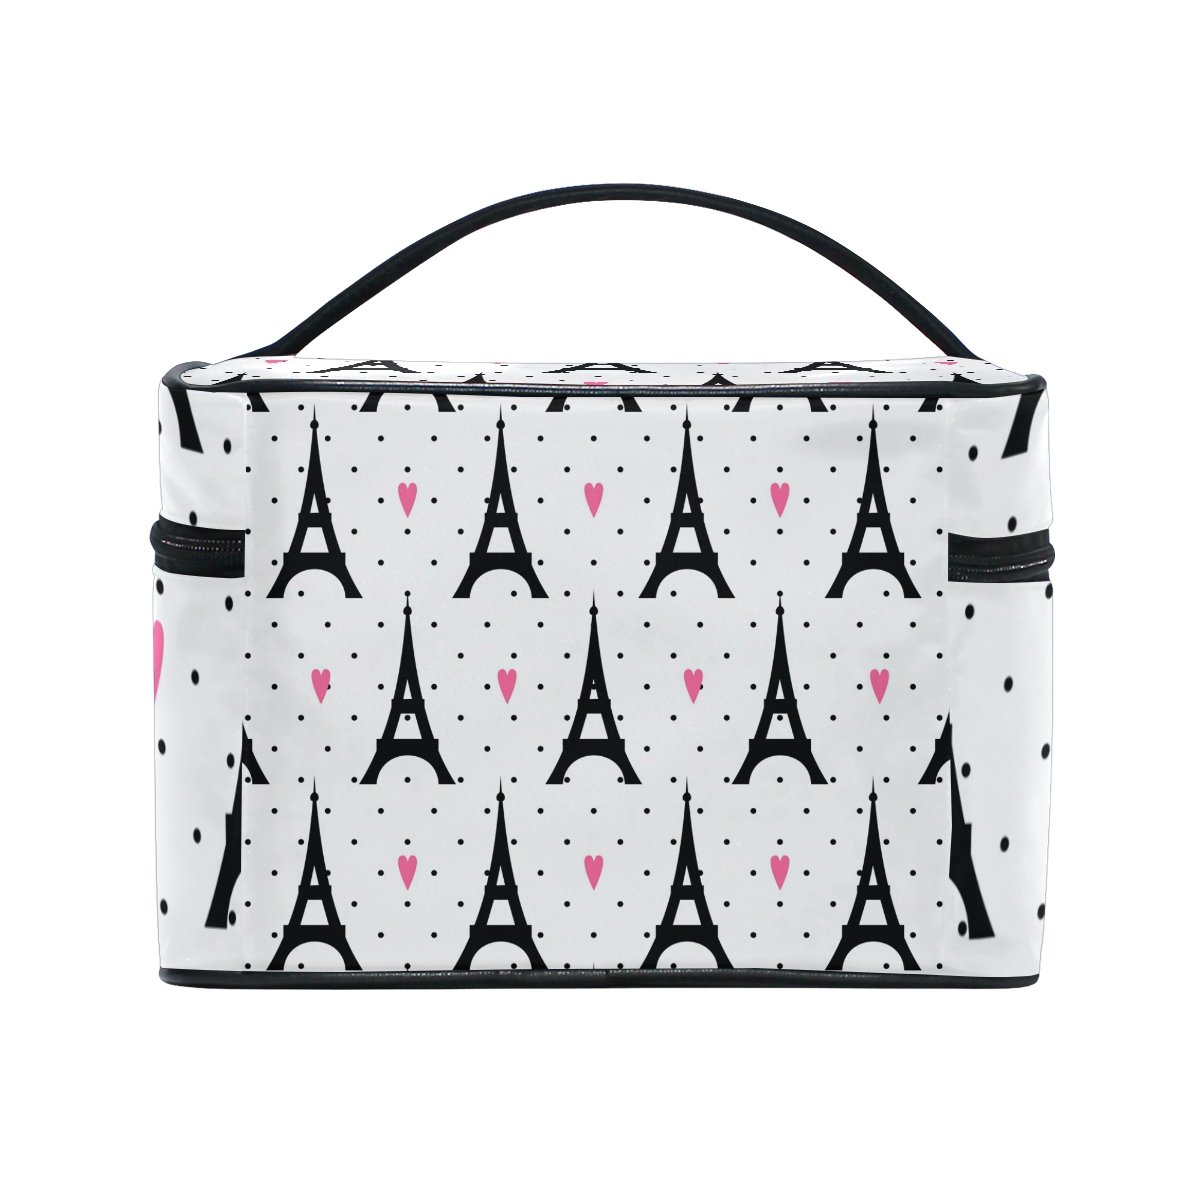 GIOVANIOR Paris Eiffel Tower Love Print Large Cosmetic Bag Travel Makeup Organizer Case Holder for Women Girls by GIOVANIOR (Image #4)